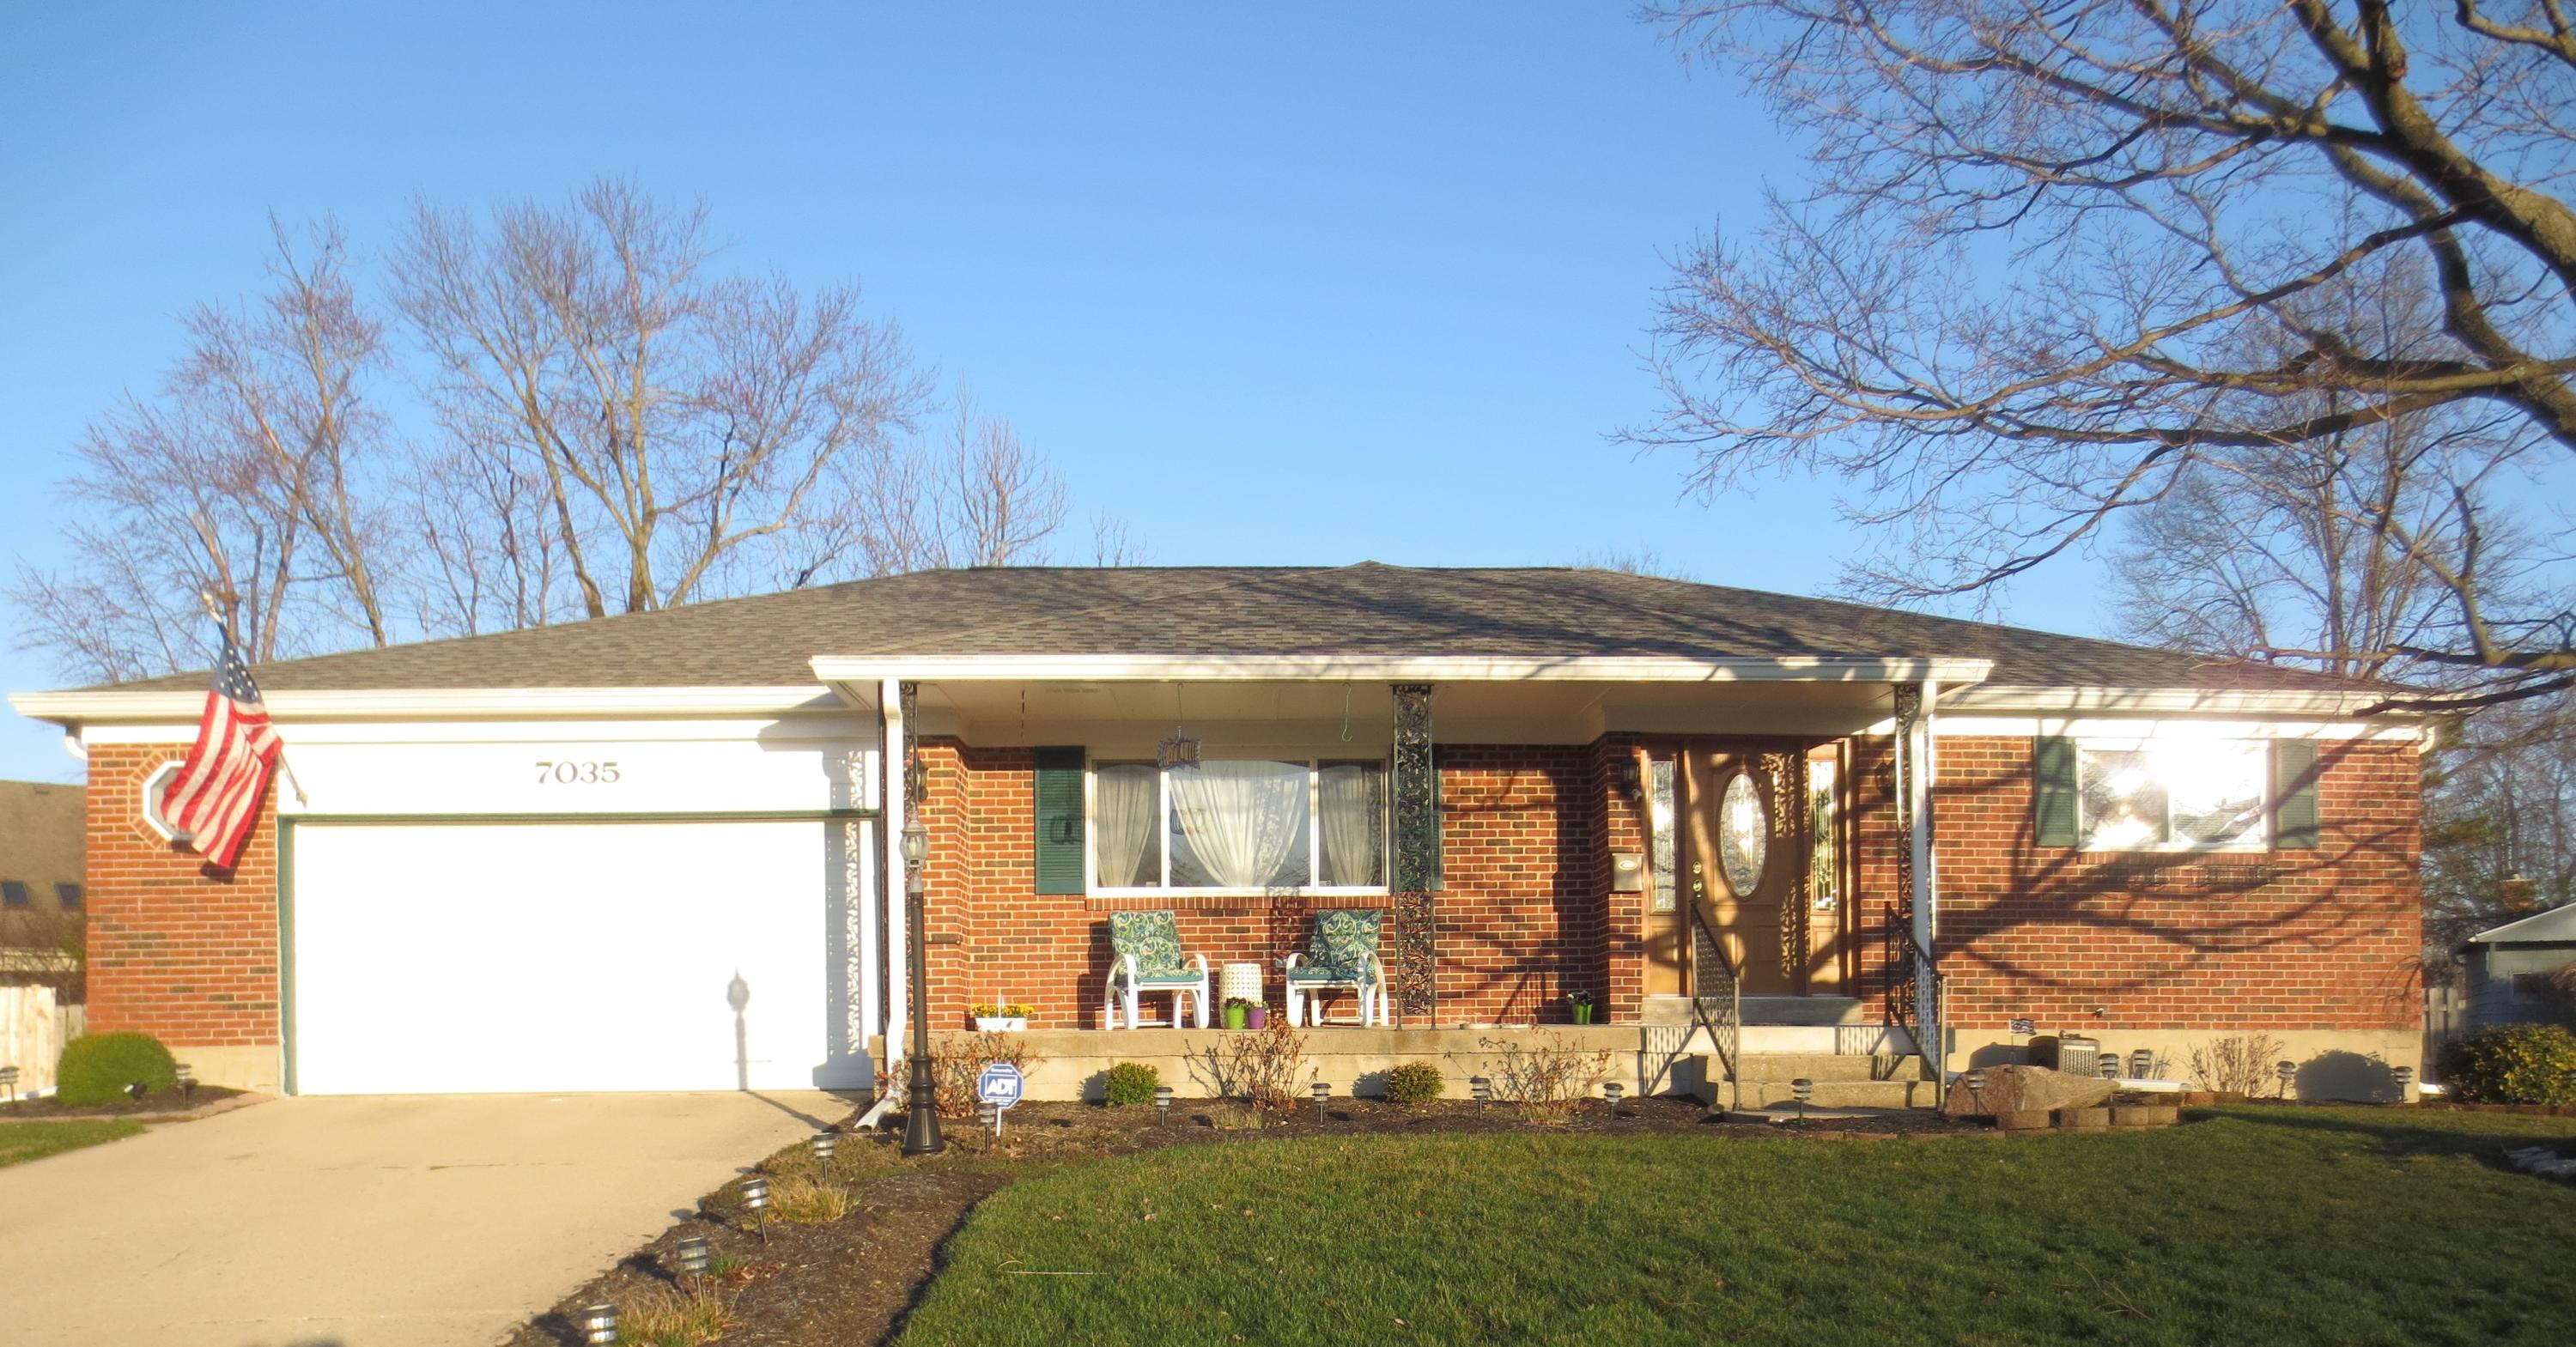 7035 Monte Carlo Drive Property Photo - Englewood, OH real estate listing